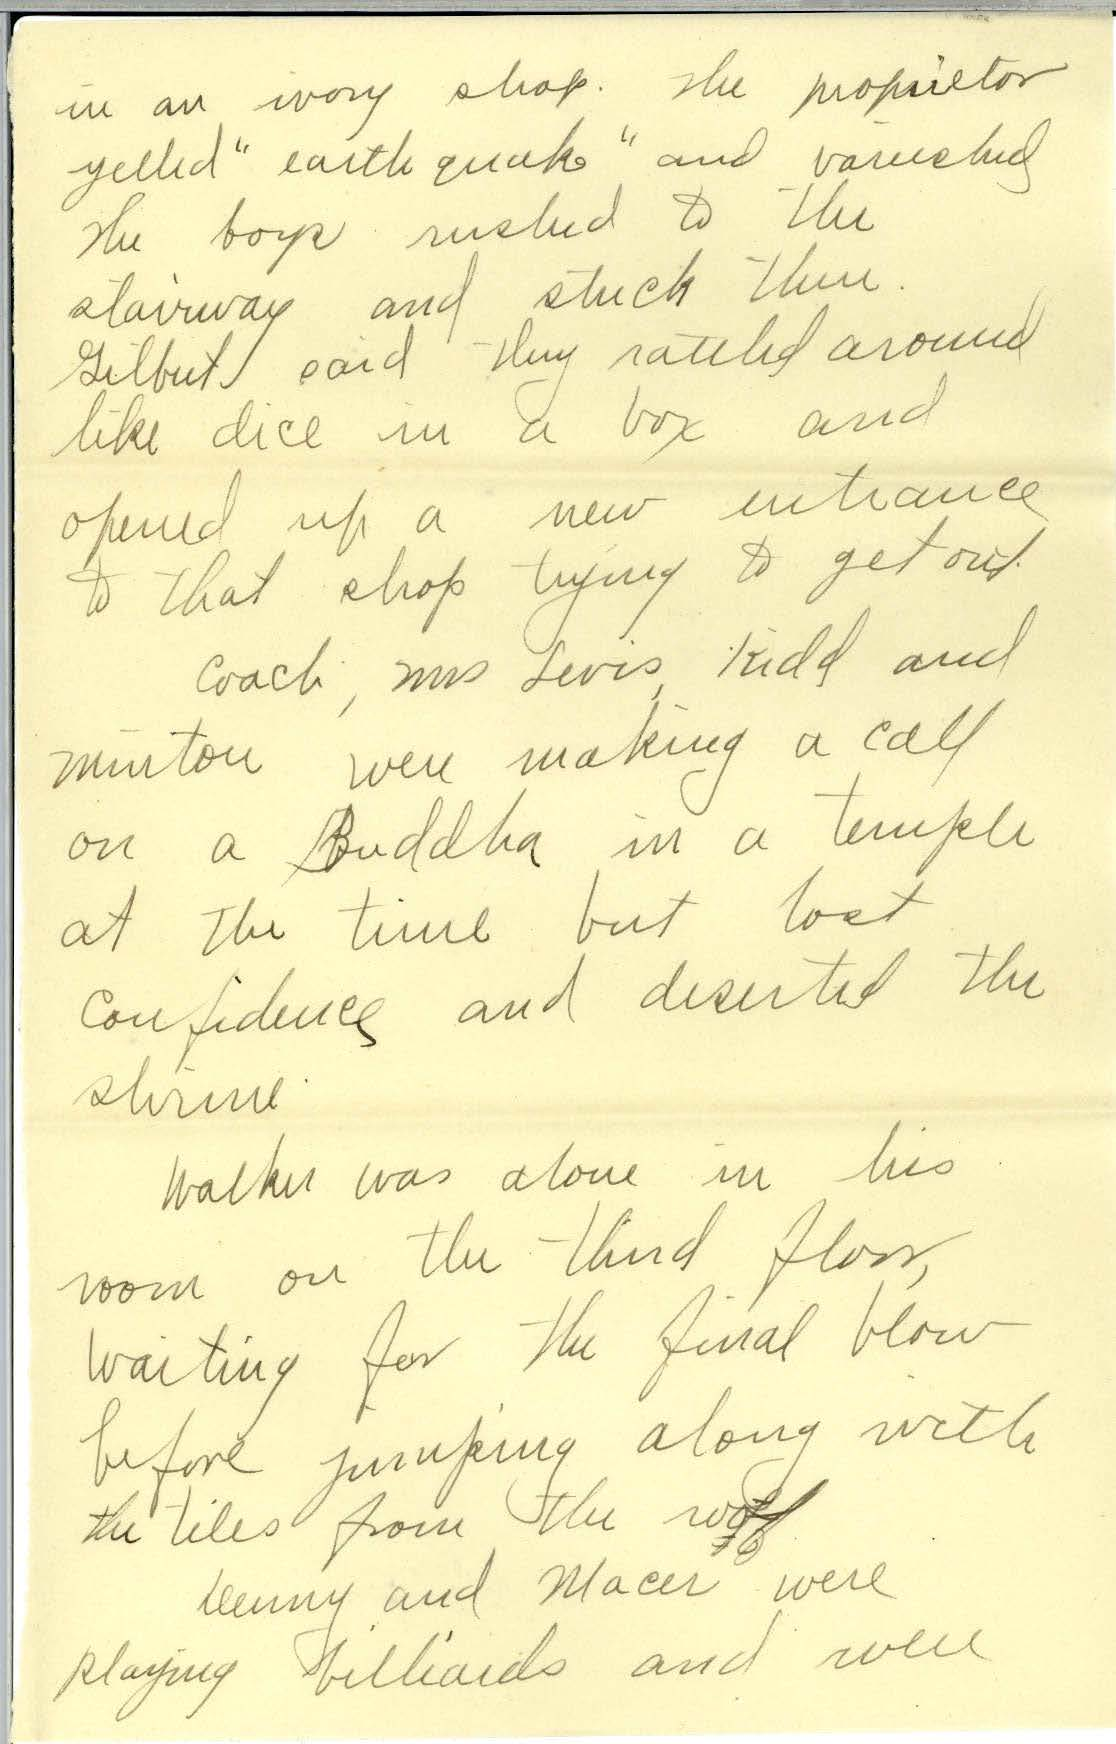 Scan of page 2 of Edna Hatfield's April 30, 1922 letter to Frank R. Elliot - written in cursive handwriting.